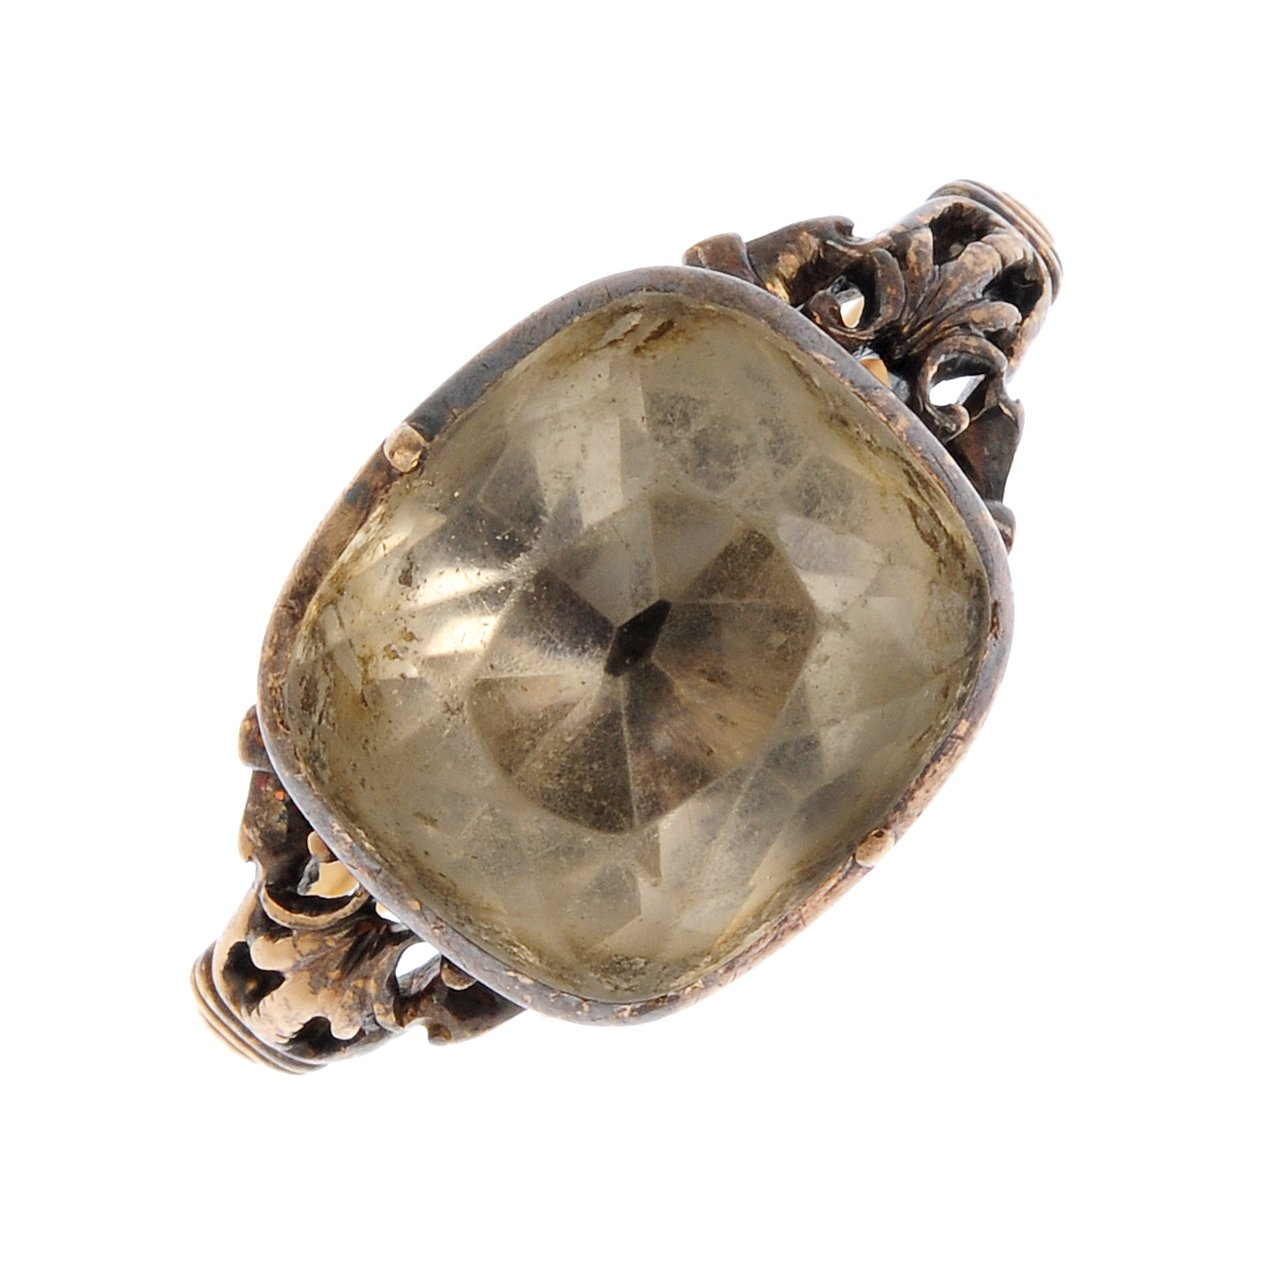 "<a href=""https://www.fellows.co.uk/2104-lot-382-A-late-Georgian-gold-rock-crystal-ring?utm_source=Ageless%20Heirlooms&utm_medium=blog&utm_campaign=Ageless%20Heirlooms%20Vintage&utm_content=Blog%20and%20social"">LOT 382</a>"